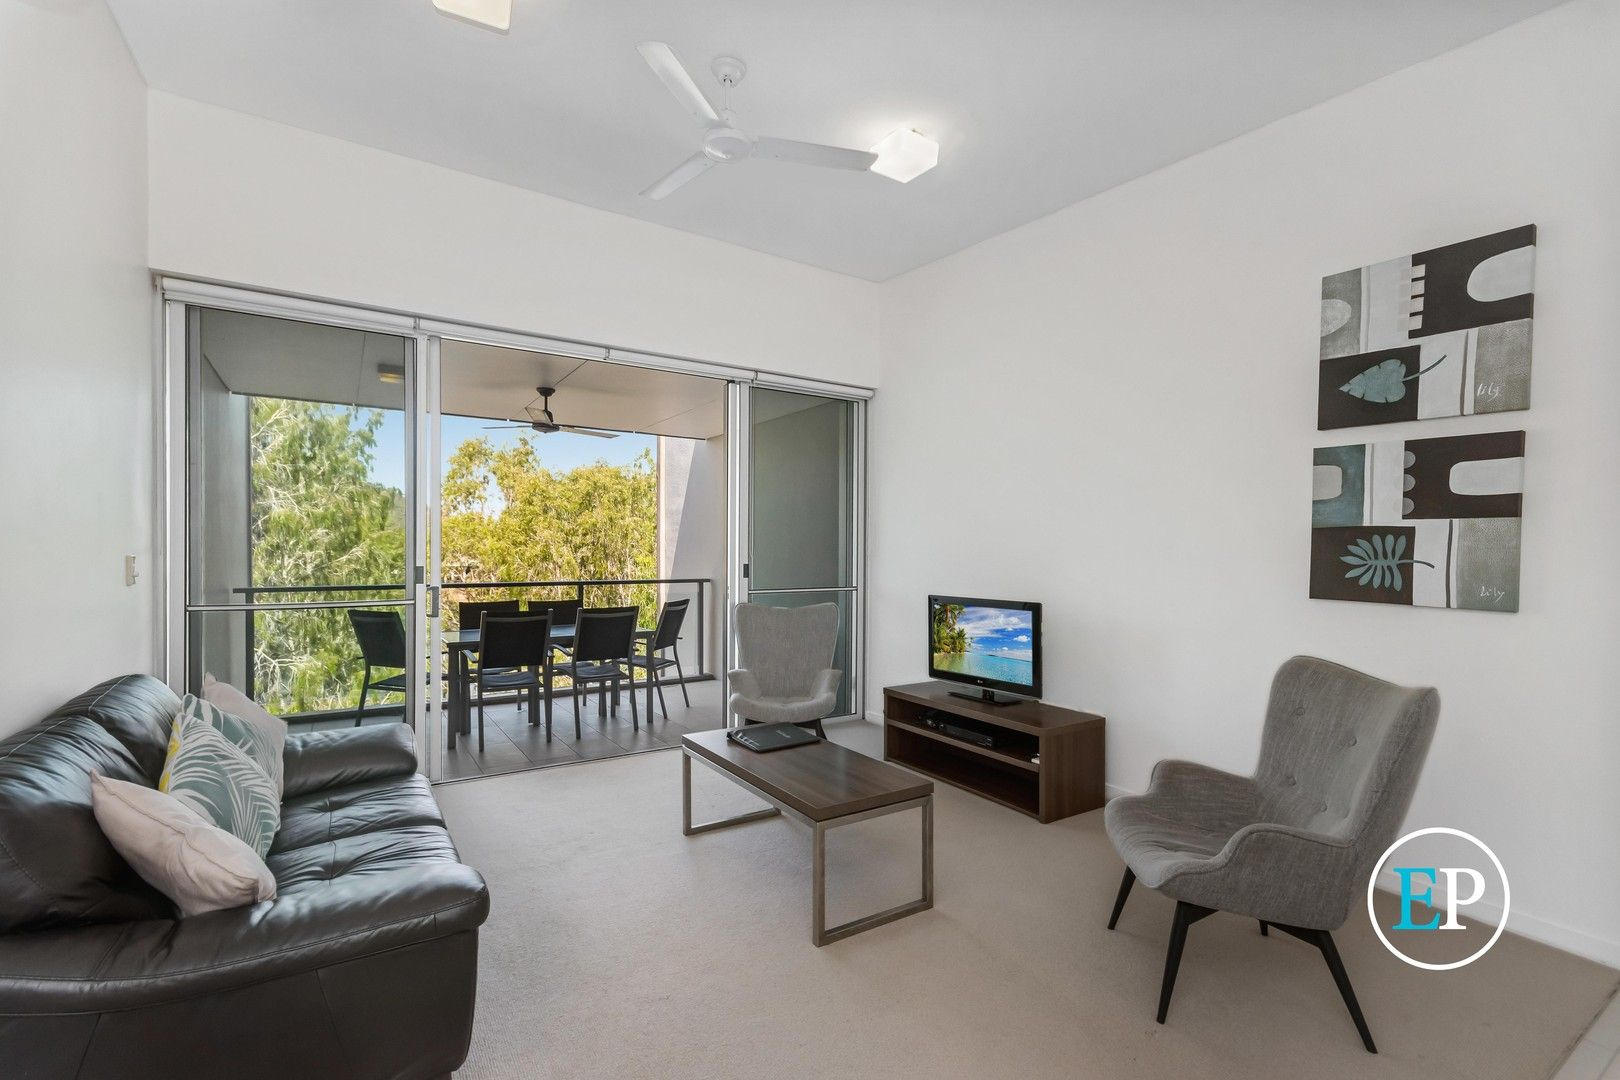 25/1-15 Sporting Drive, Thuringowa Central QLD 4817, Image 0